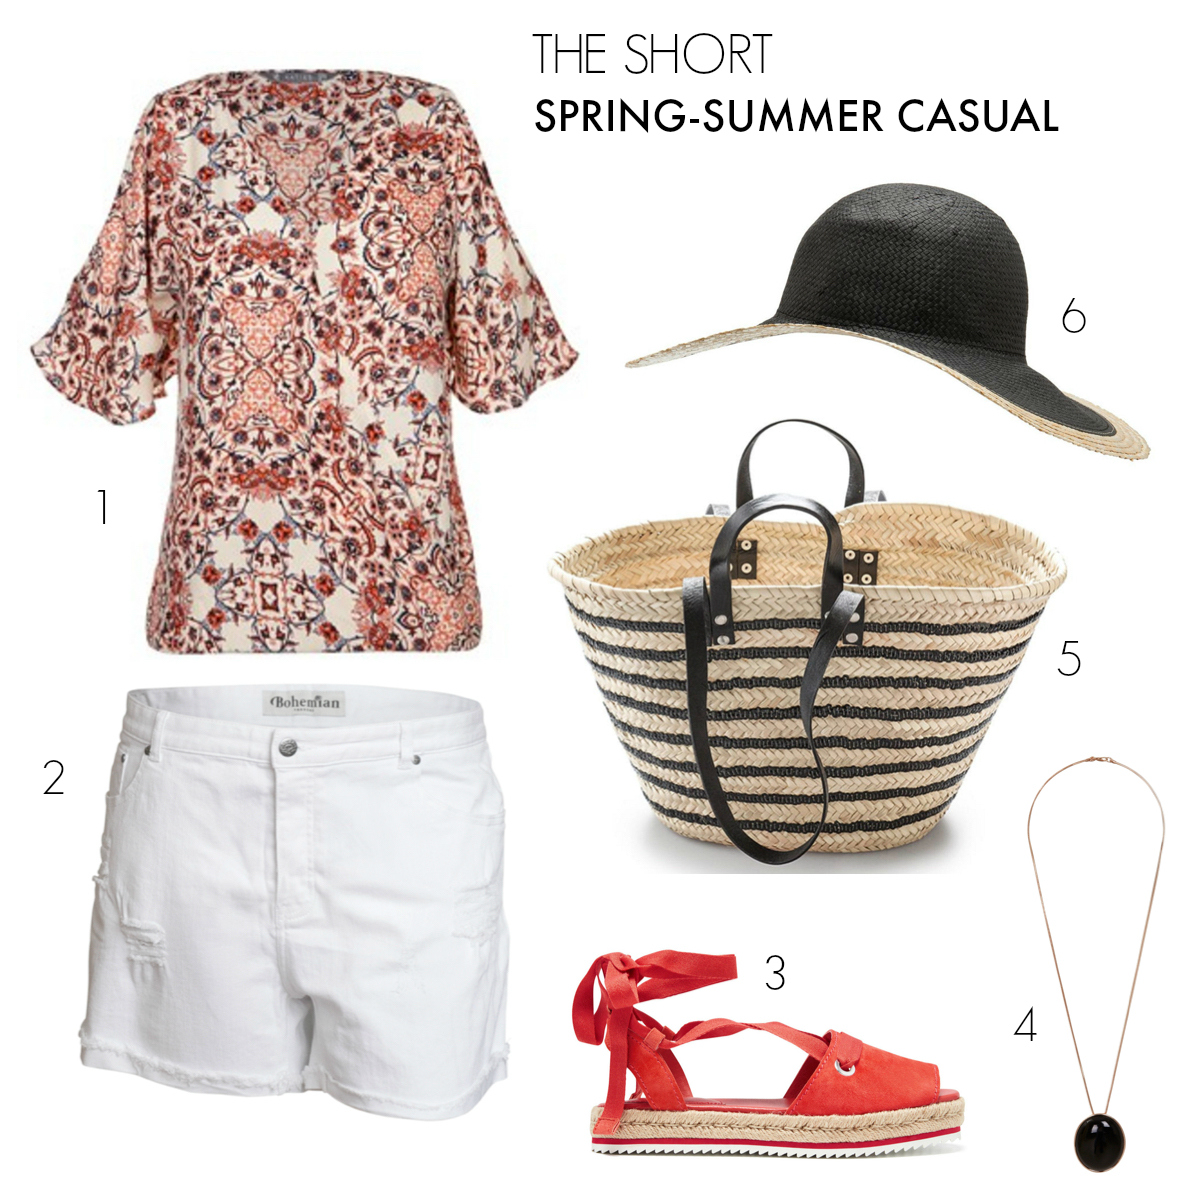 The Short | Casual outfits to take you from spring to summer